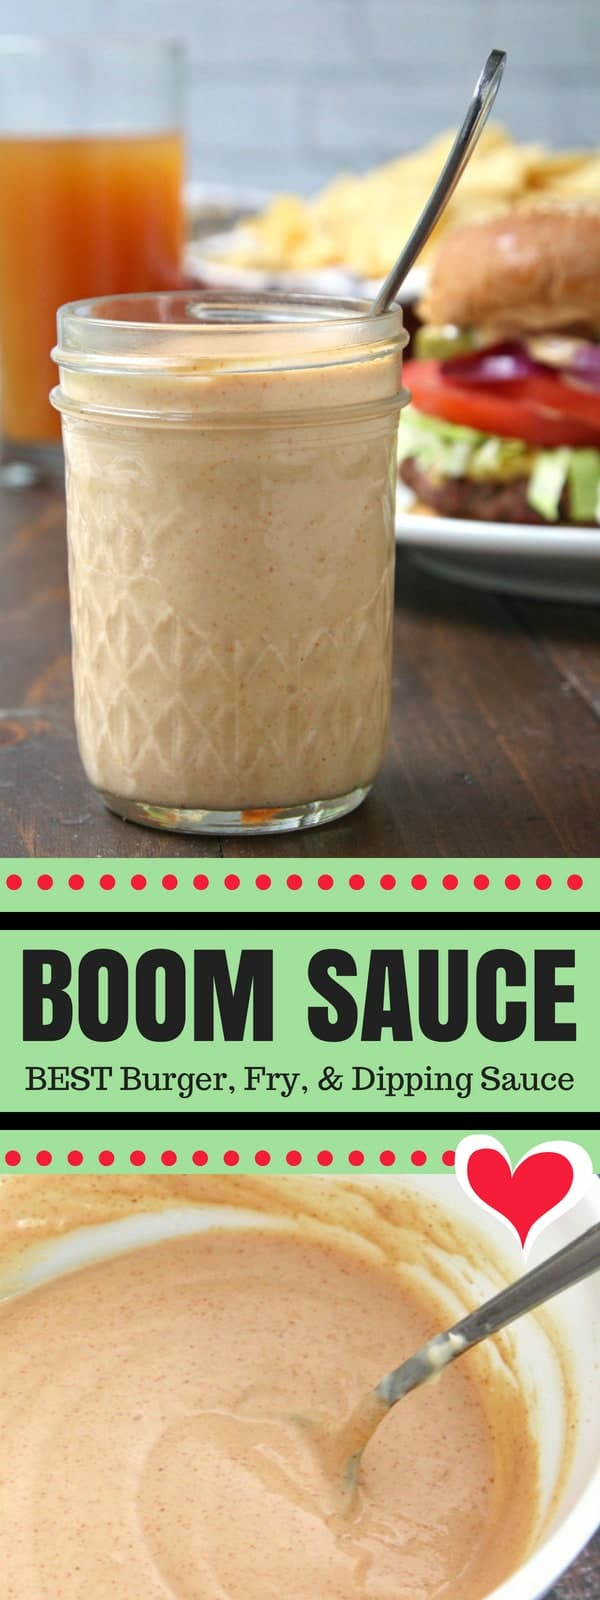 Boom Sauce Recipe, an easy burger and fry sauce recipe that is great on other things like sandwiches, chicken, salads, and even fish! My family also calls this addictive sauce our